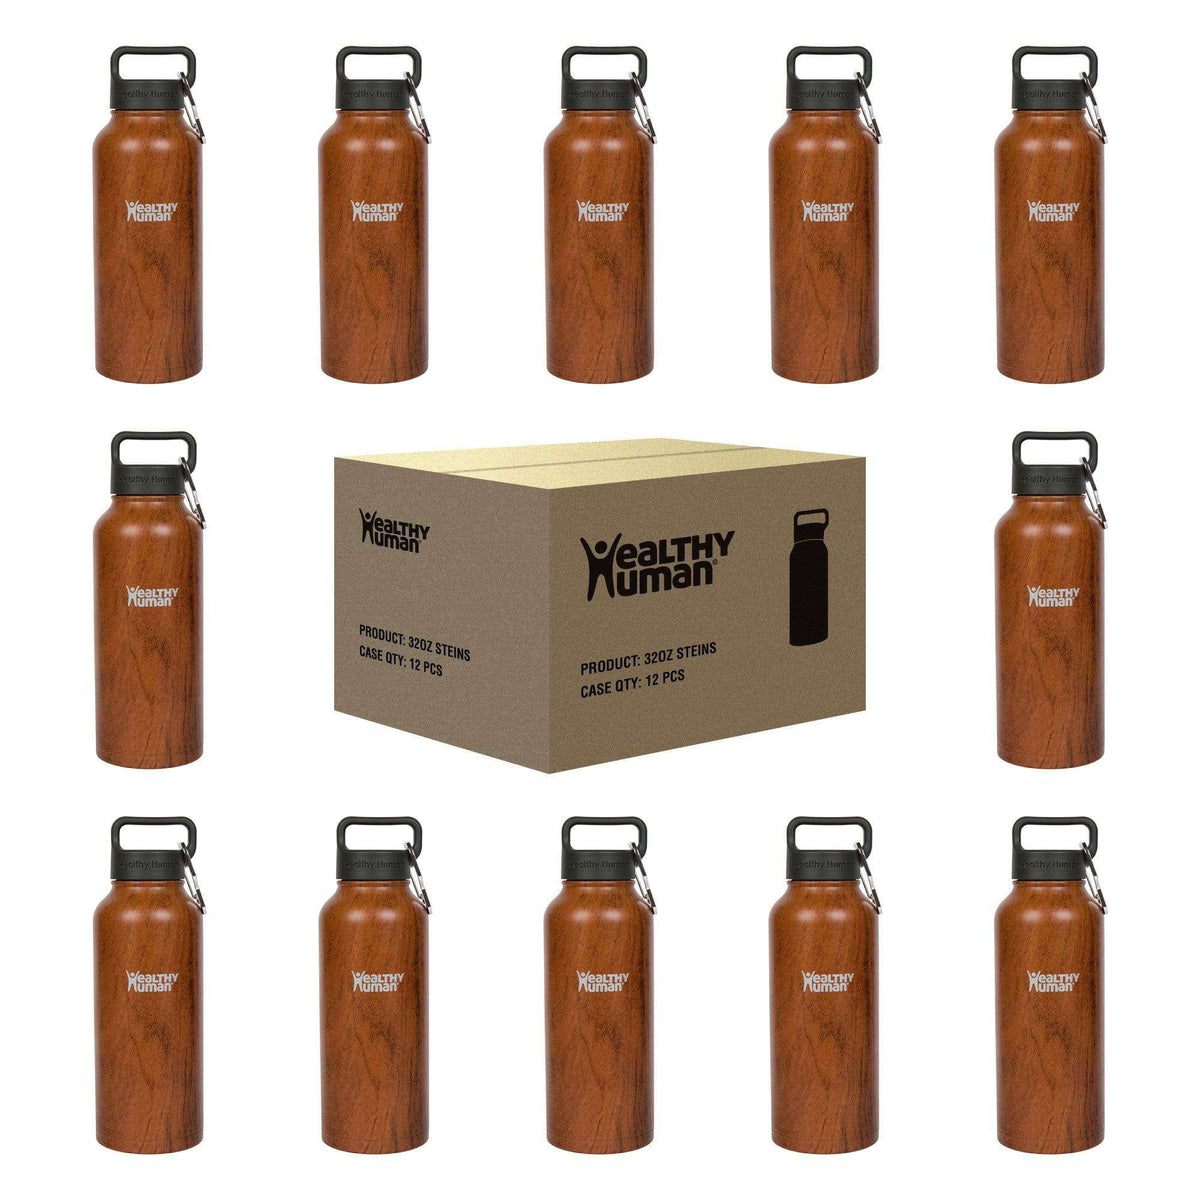 Stein Bottle 12 Case Packs